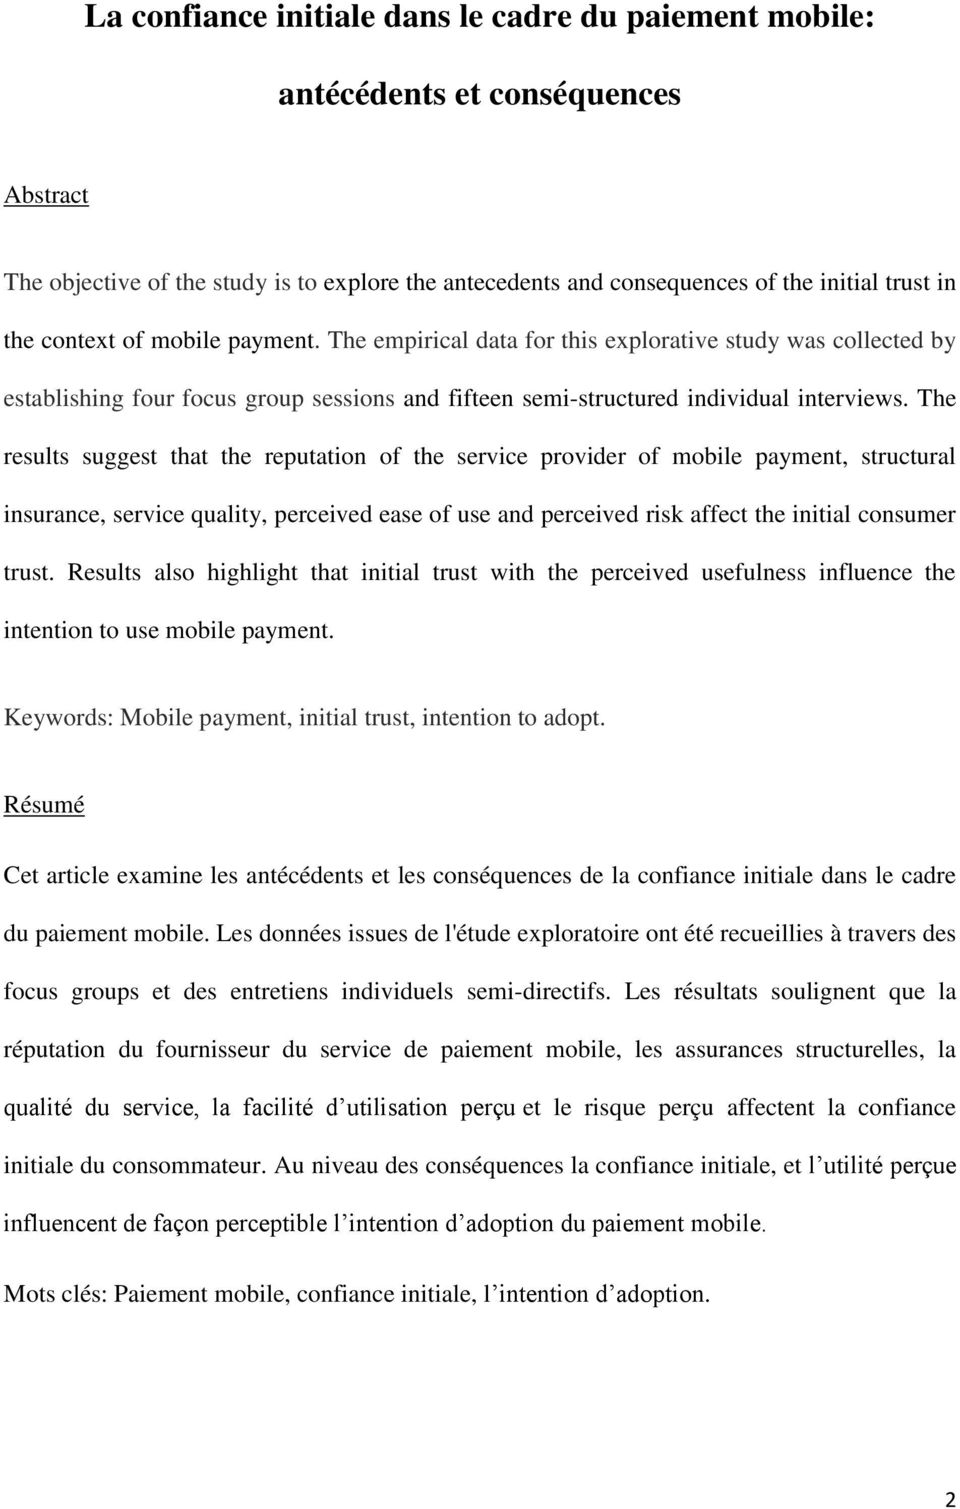 The results suggest that the reputation of the service provider of mobile payment, structural insurance, service quality, perceived ease of use and perceived risk affect the initial consumer trust.